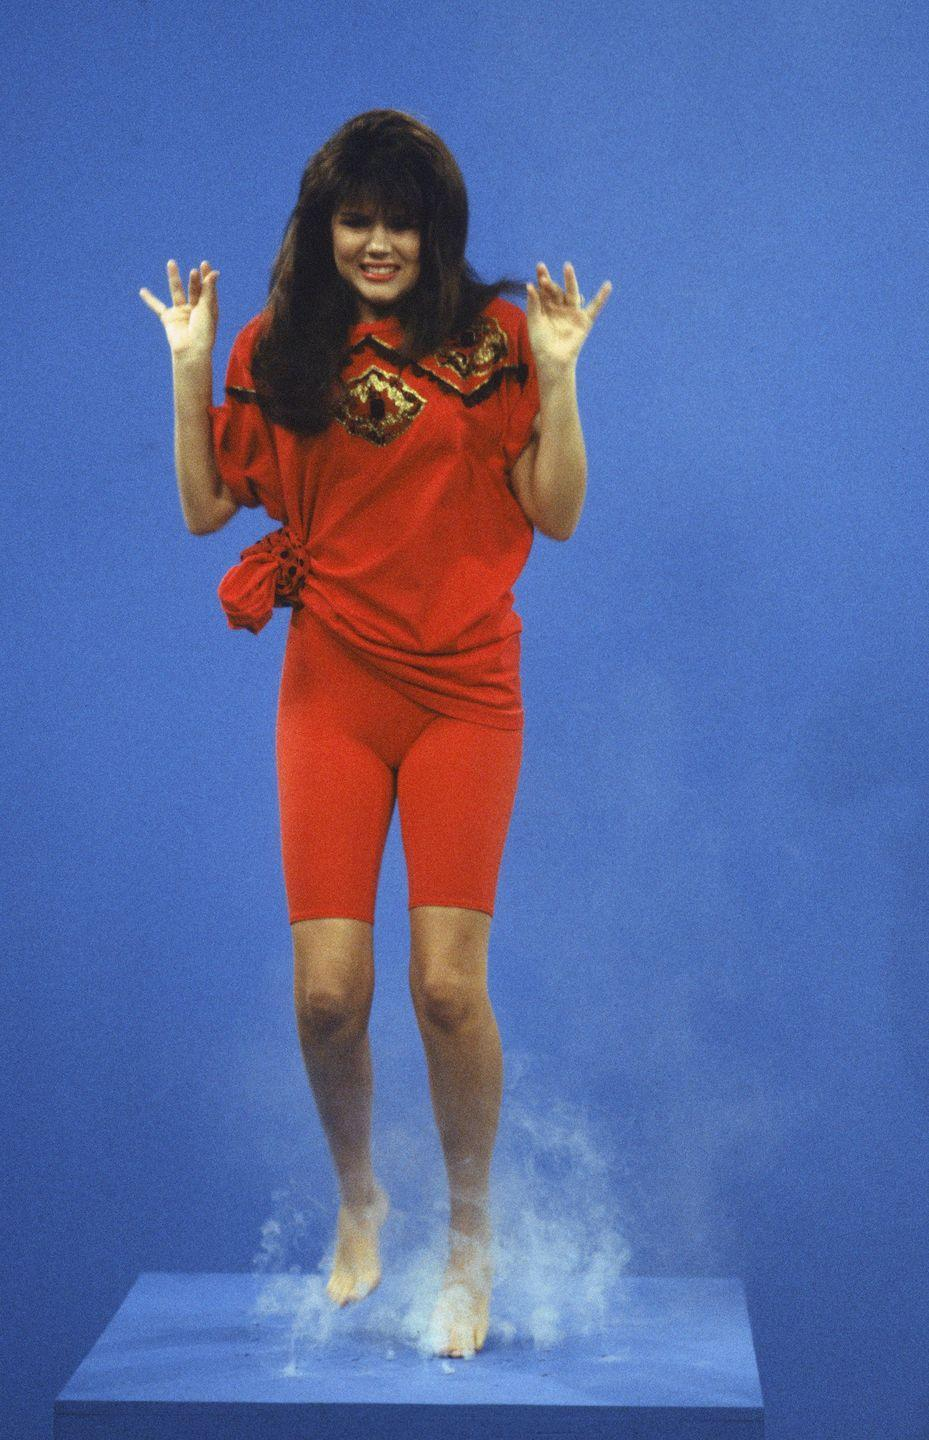 <p>Tiffani Amber Thiessen wears red bicycle shorts, while filming Saved By the Bell. Thiessen played the show's leading lady, Kelly Kapowski.</p>